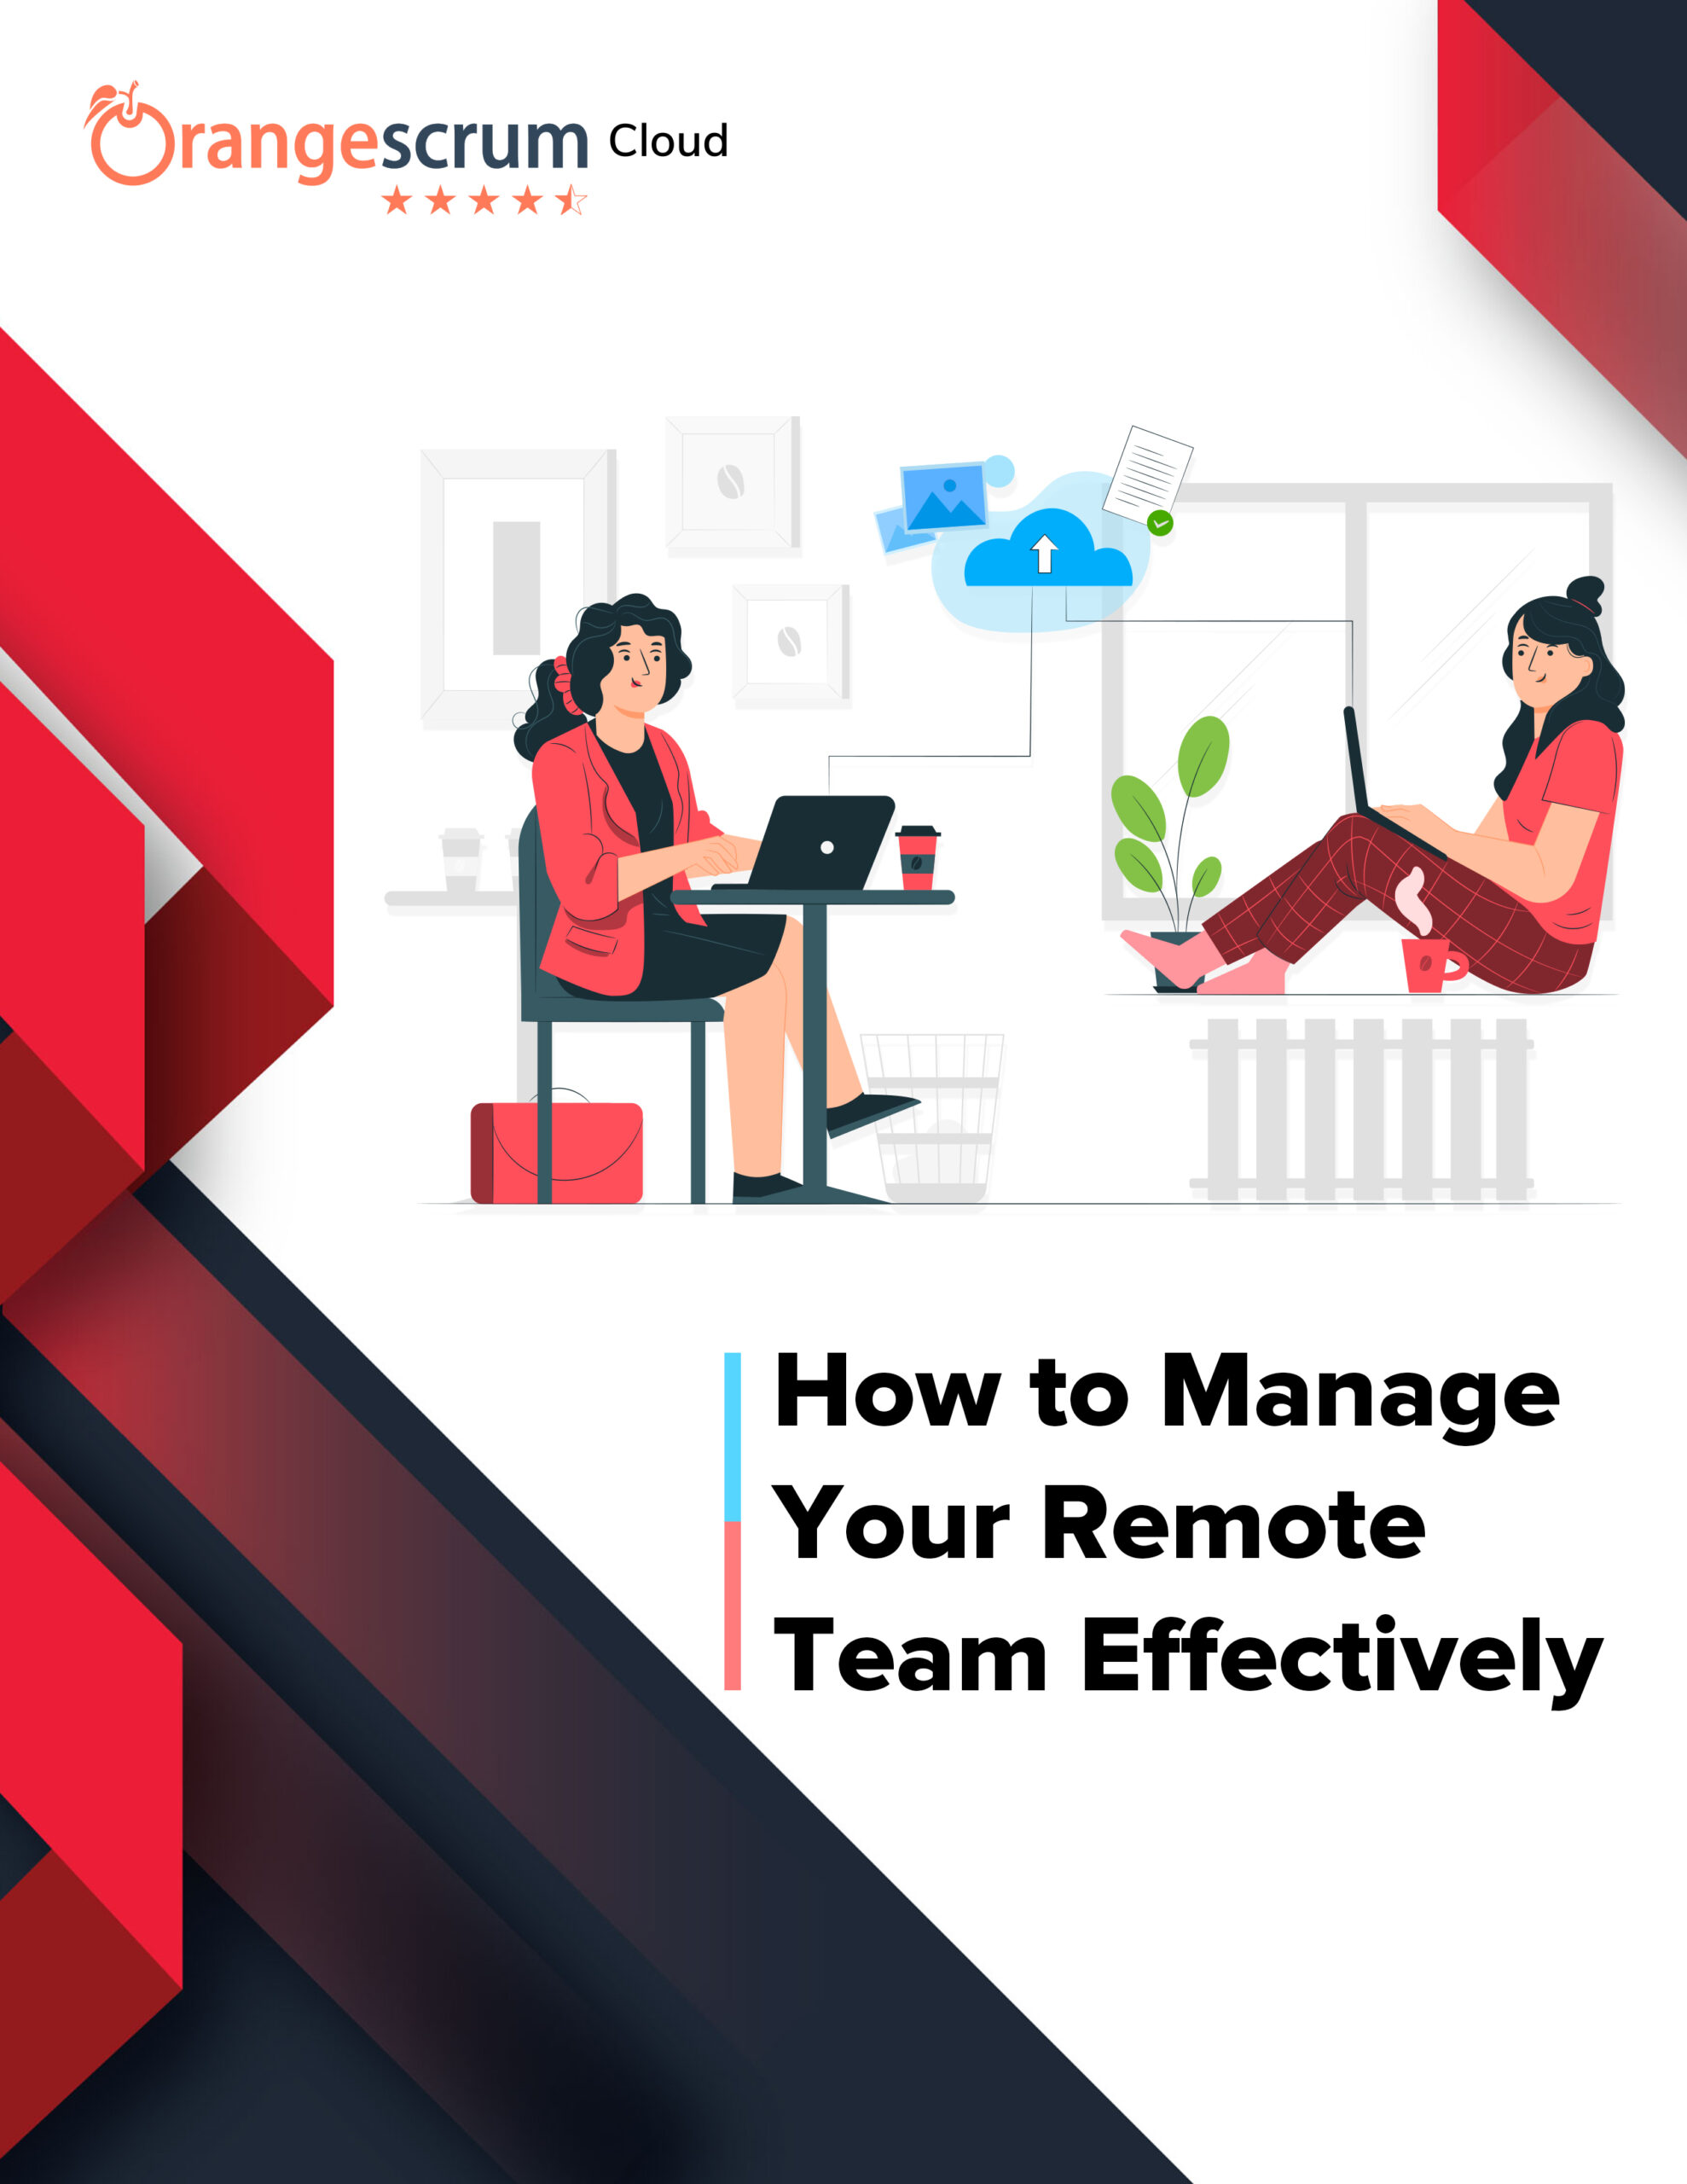 How to Manage Your Remote Team Effectively